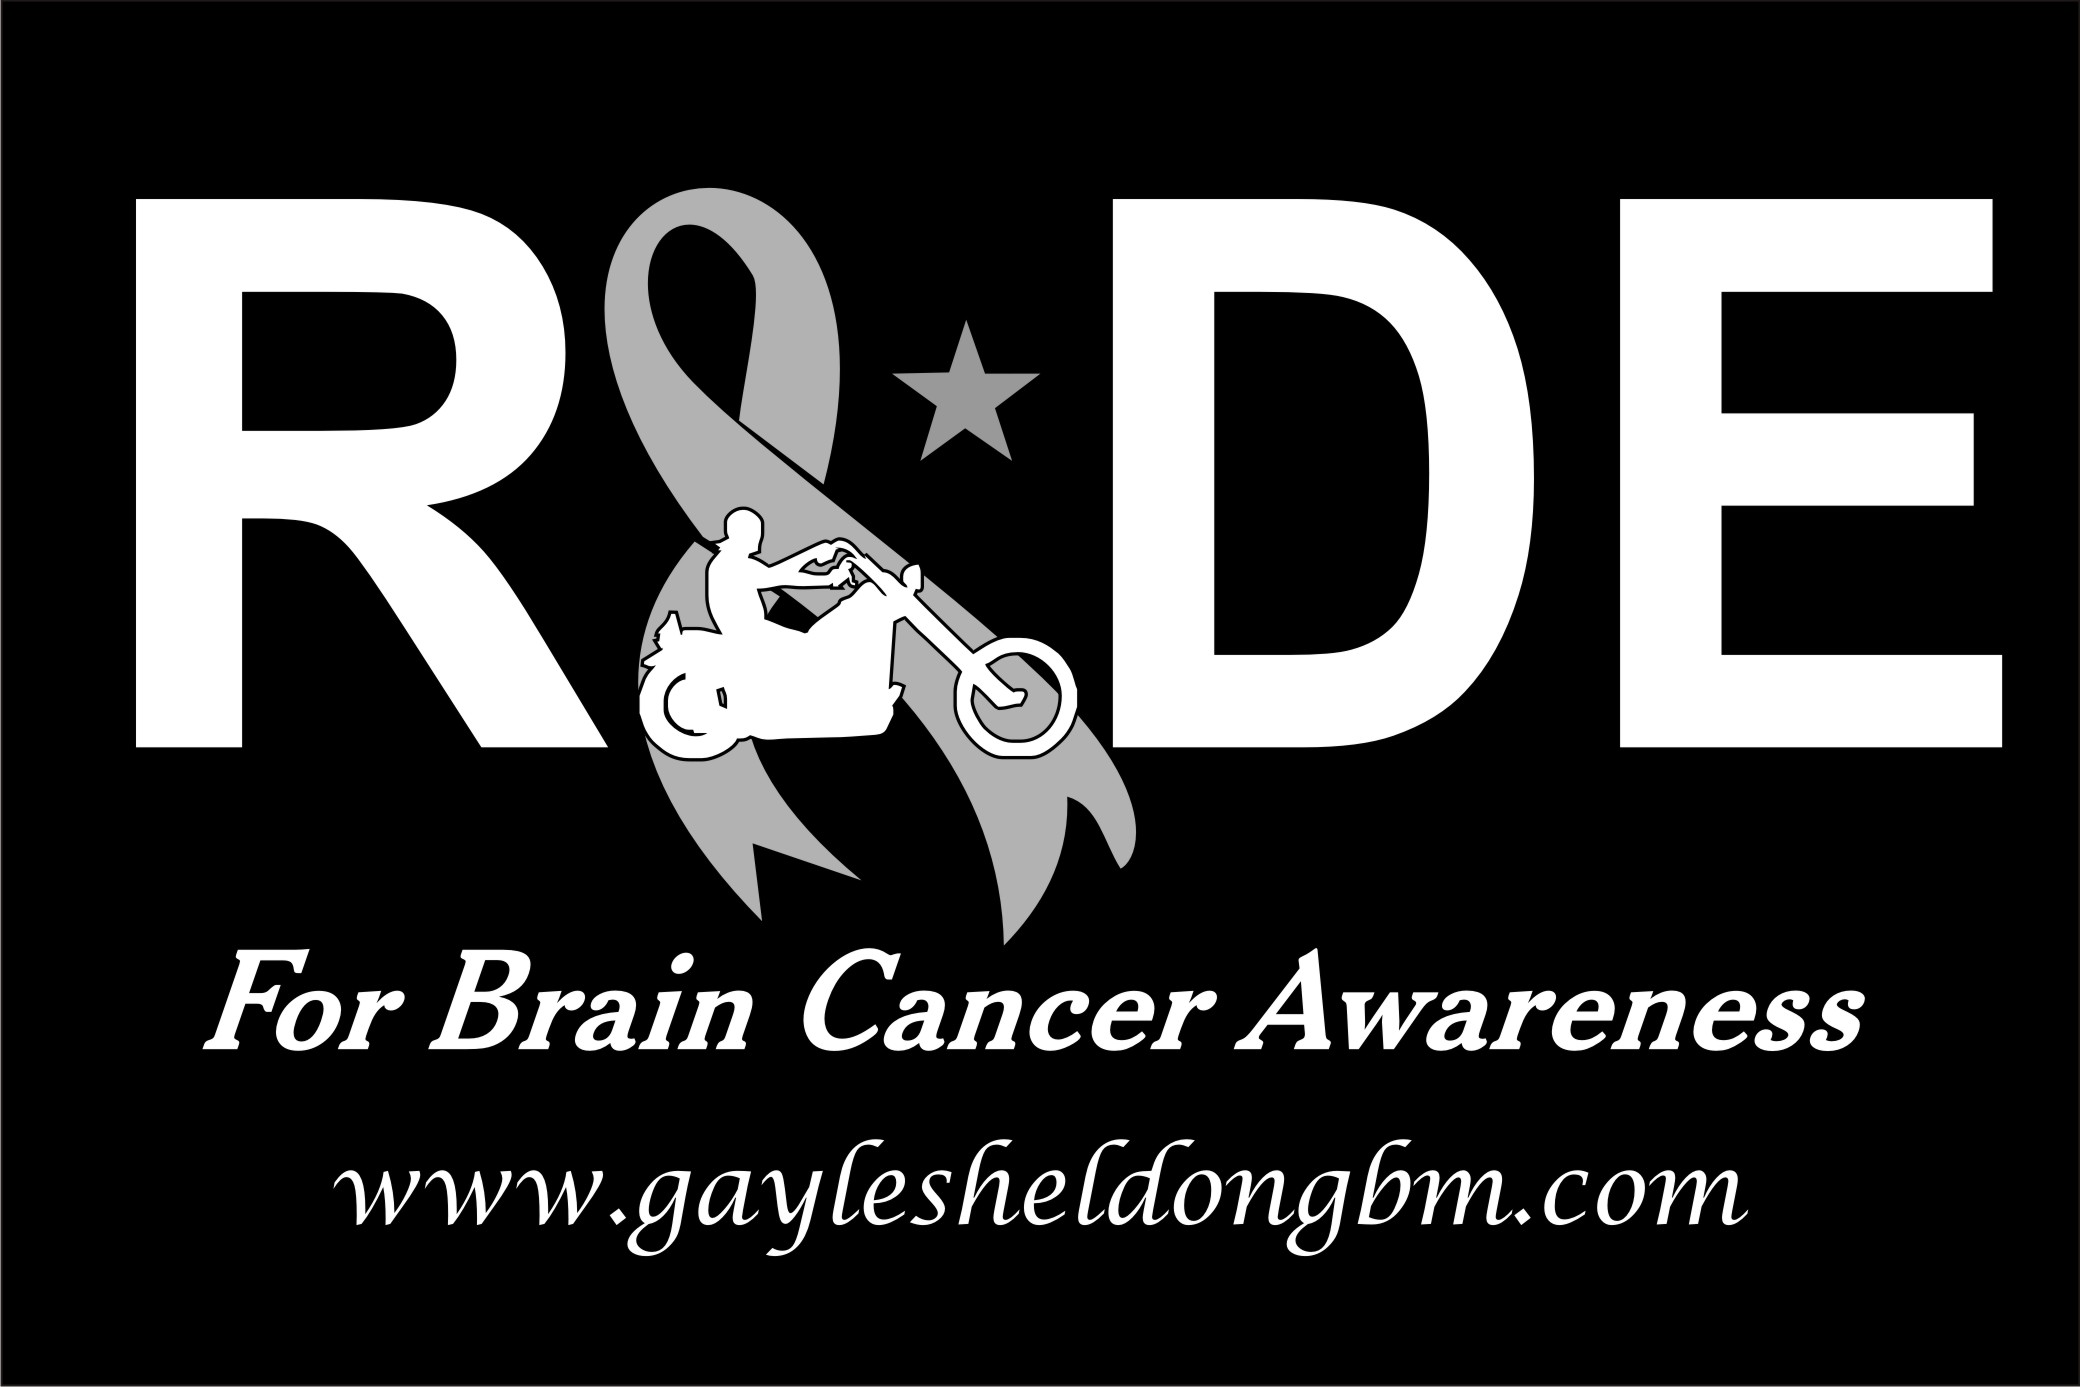 Gayle SHeldon Memorial Foundation for Brain Cancer, Inc.